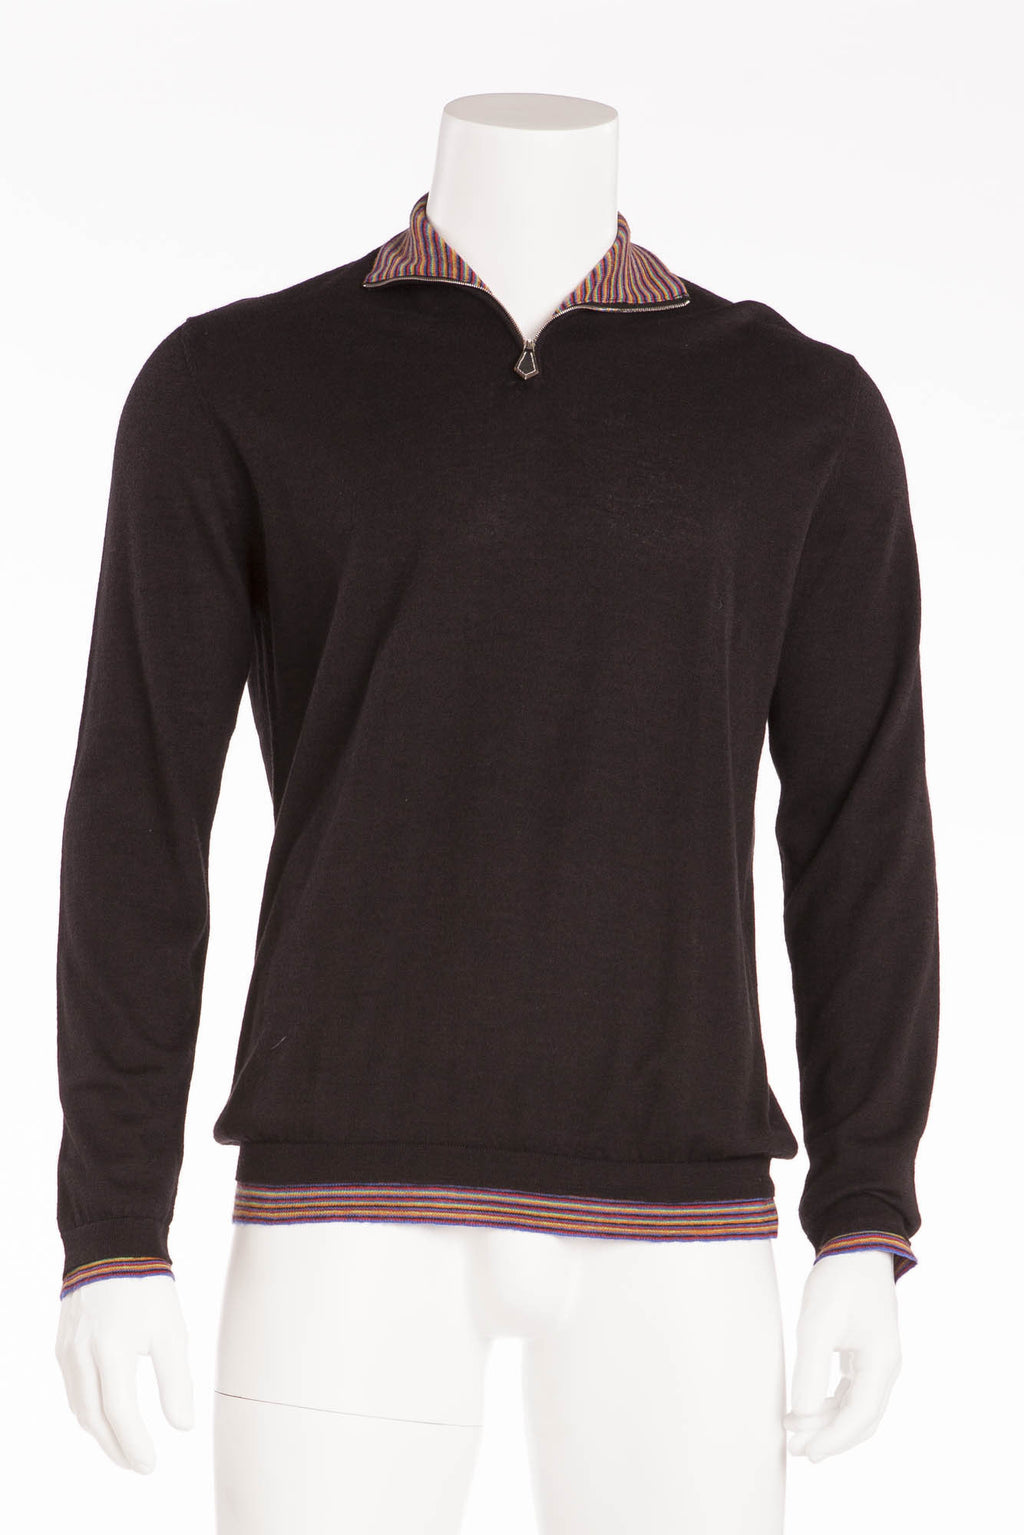 Authentic Hermes - Black Zip Neck Sweater with Multicolor Stripes on Inner Collar - XL